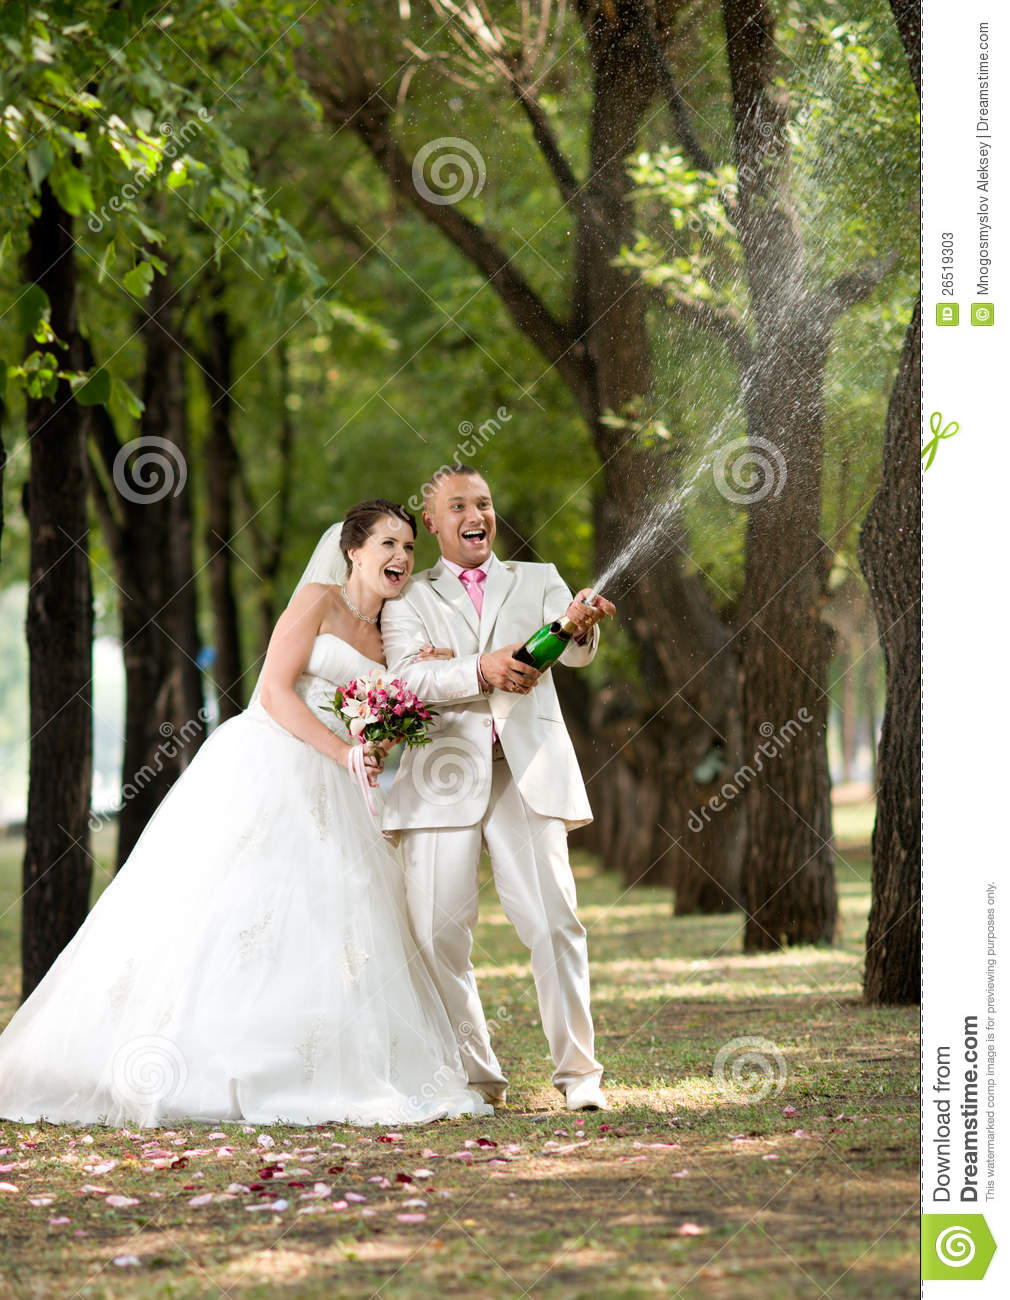 Newly married couple very happiness and fun open champagne outdoor